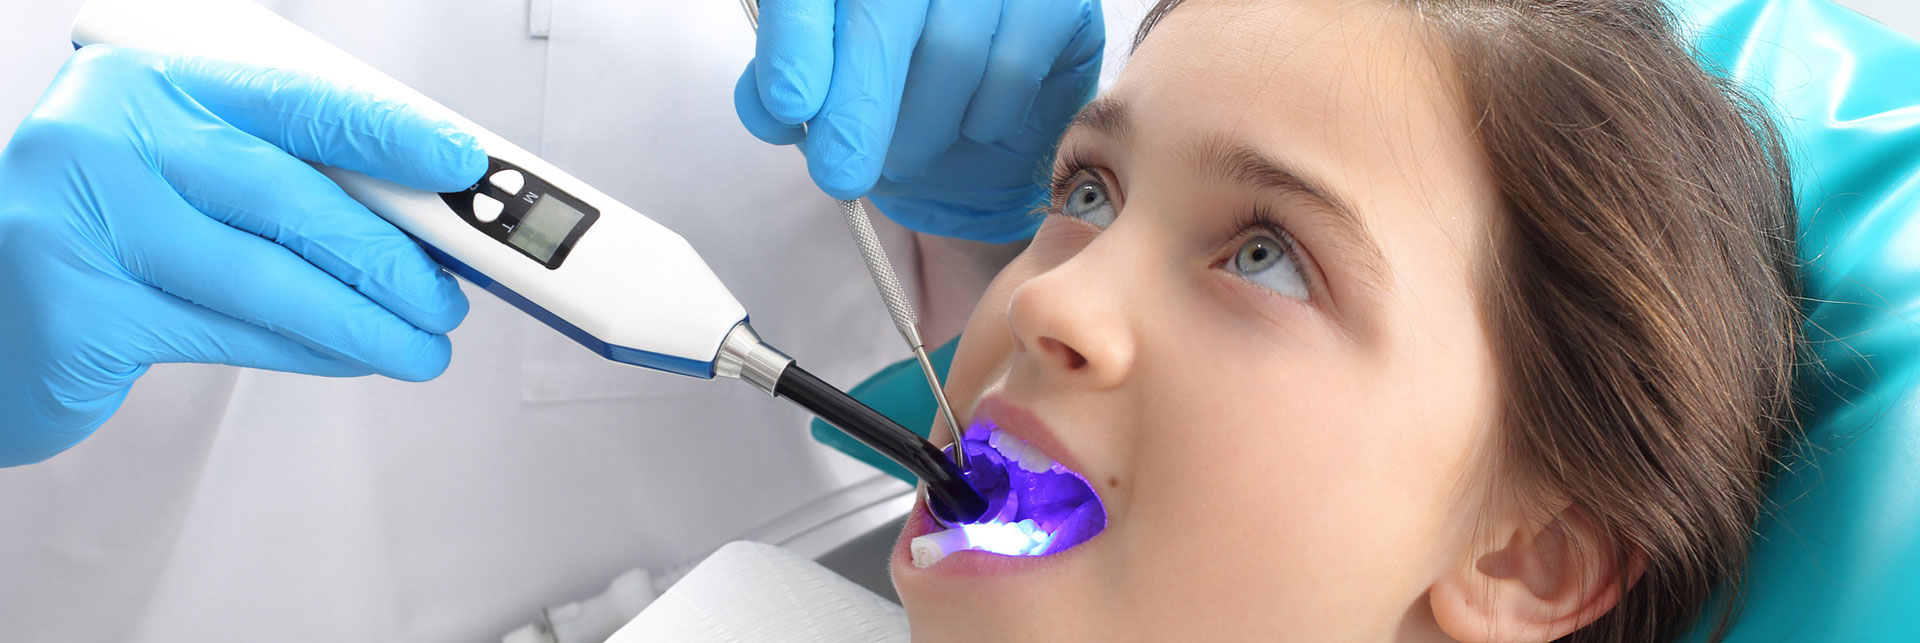 A dentist doing laser treatments to young girl